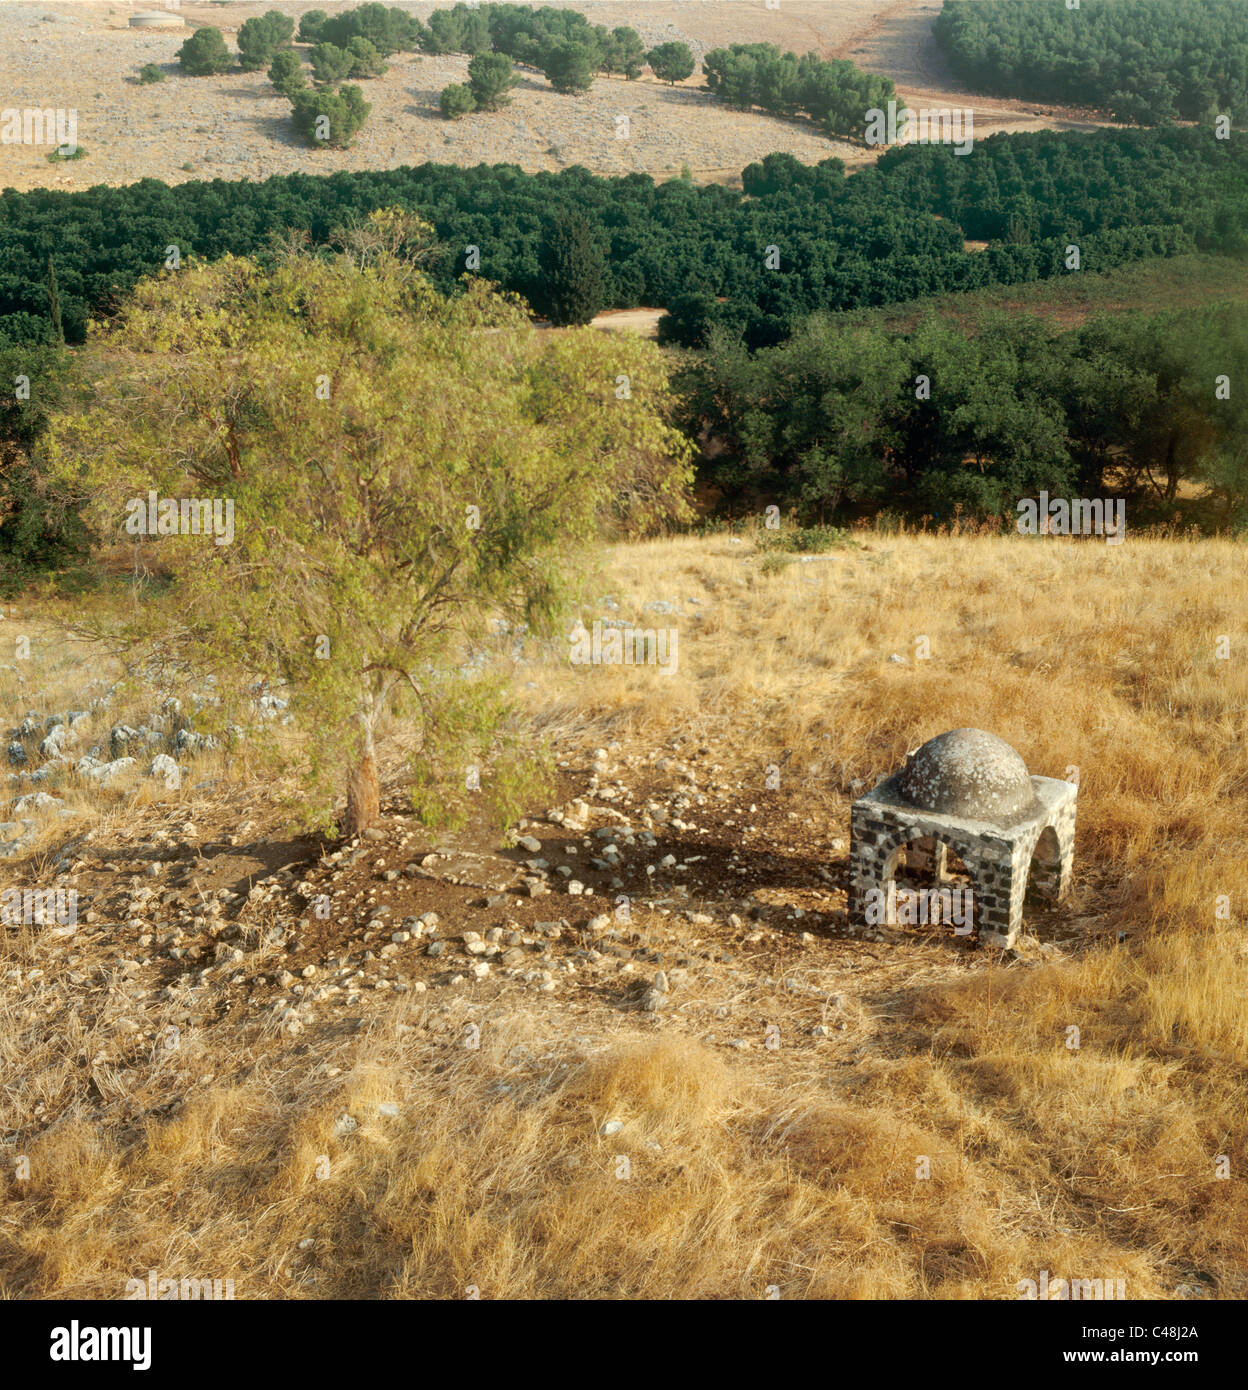 Aerial view of the Pit of Joseph at Jubb Yusuf in  the Lower Galilee - Stock Image